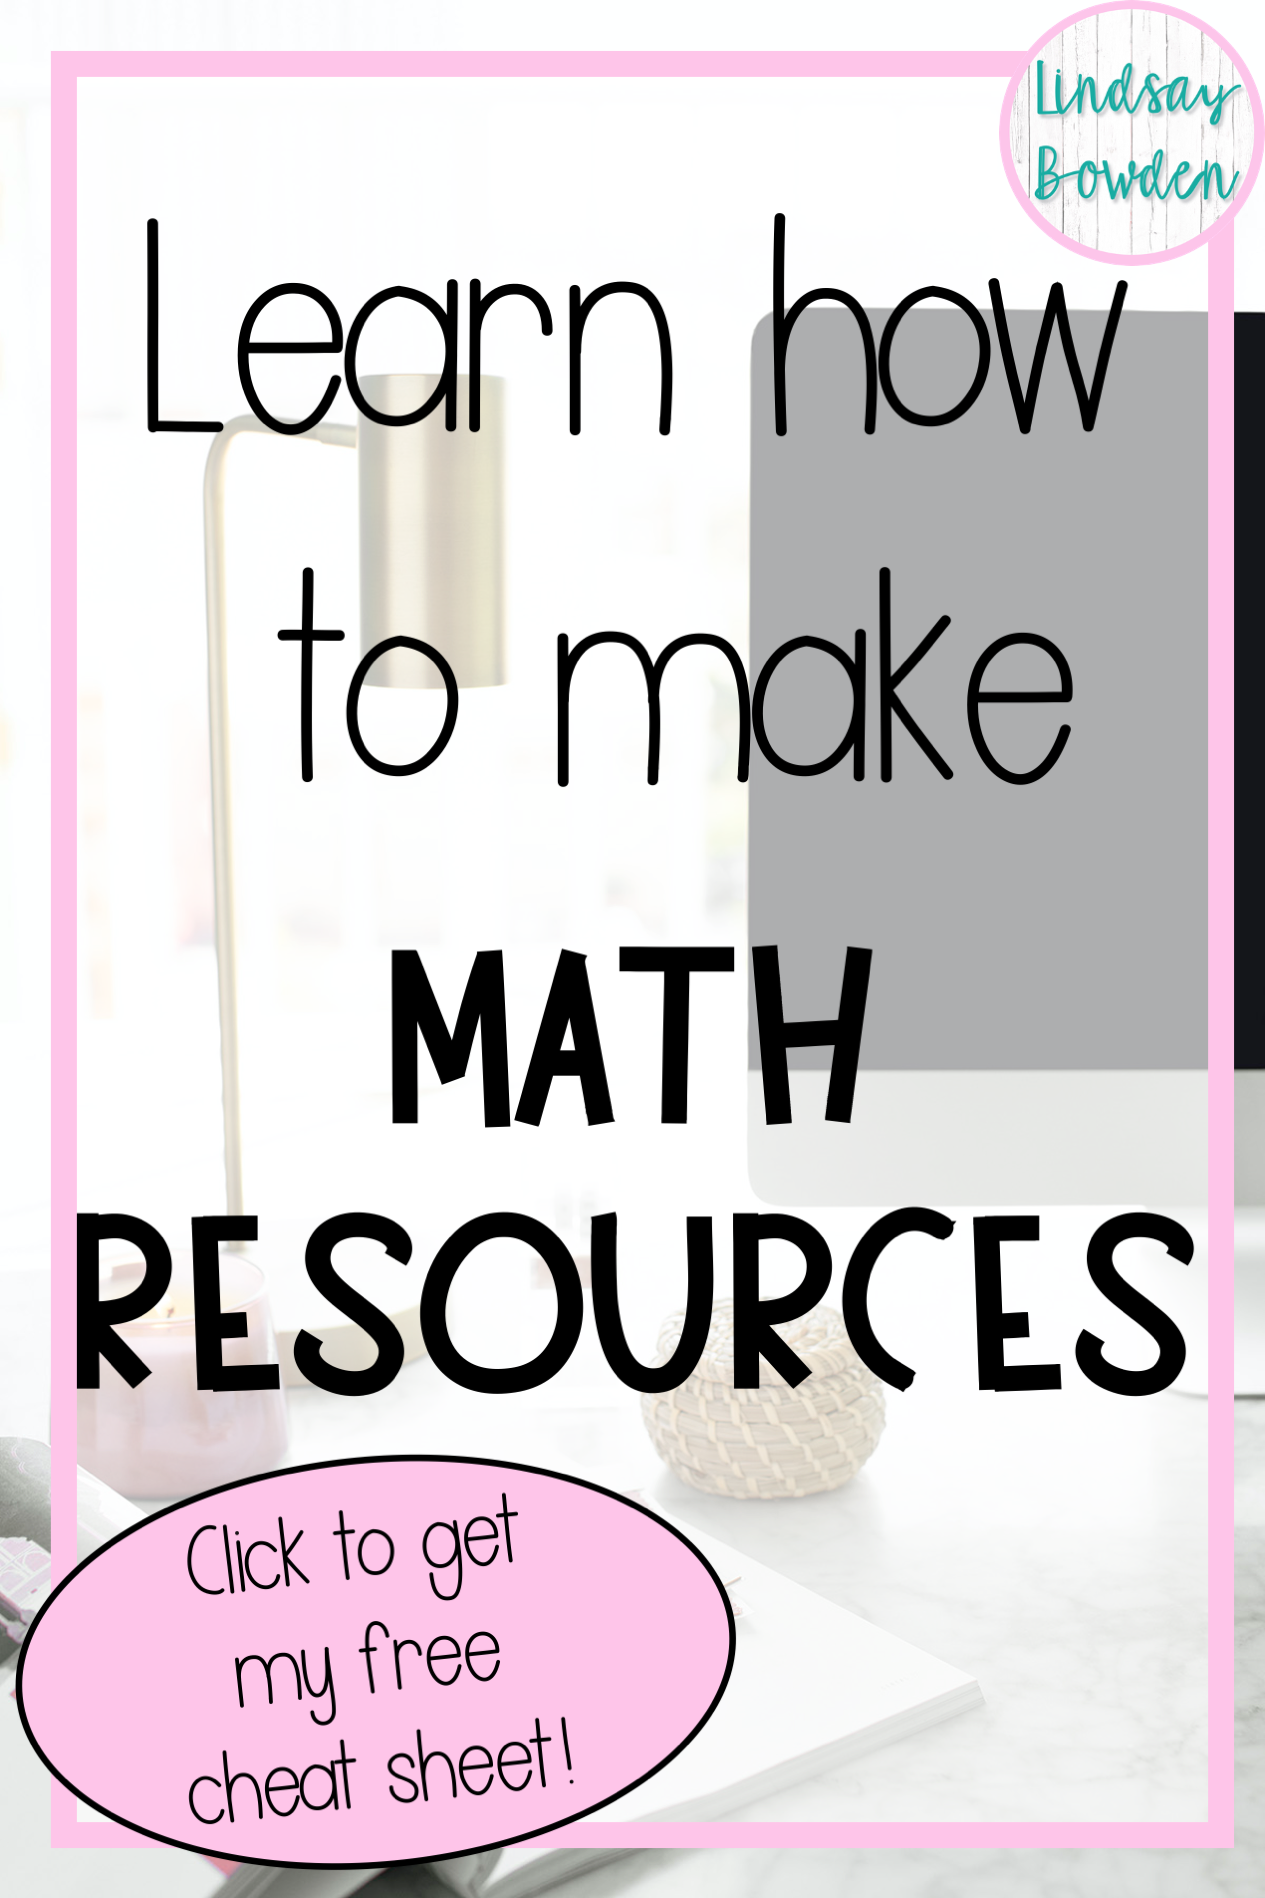 Make Your Own Math Worksheets In 5 Easy Steps